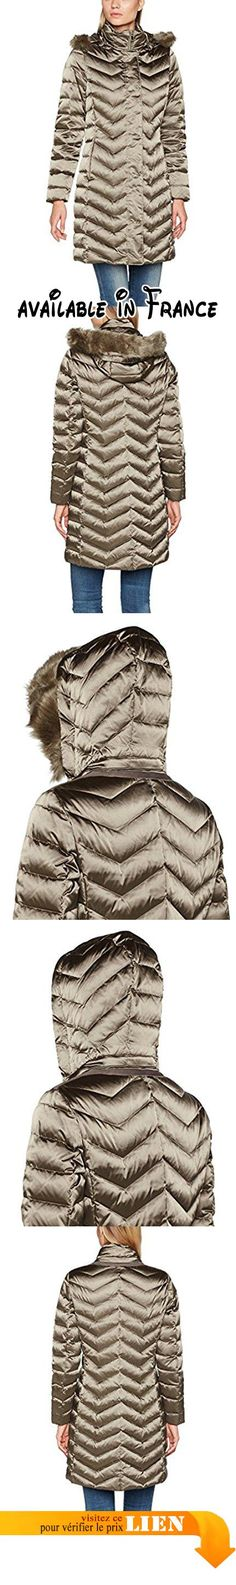 Geox Woman Down Jacket, Manteau Femme, Marron (Bungee Cord F1432), 46 (Taille Fabricant:50). #Apparel #OUTERWEAR